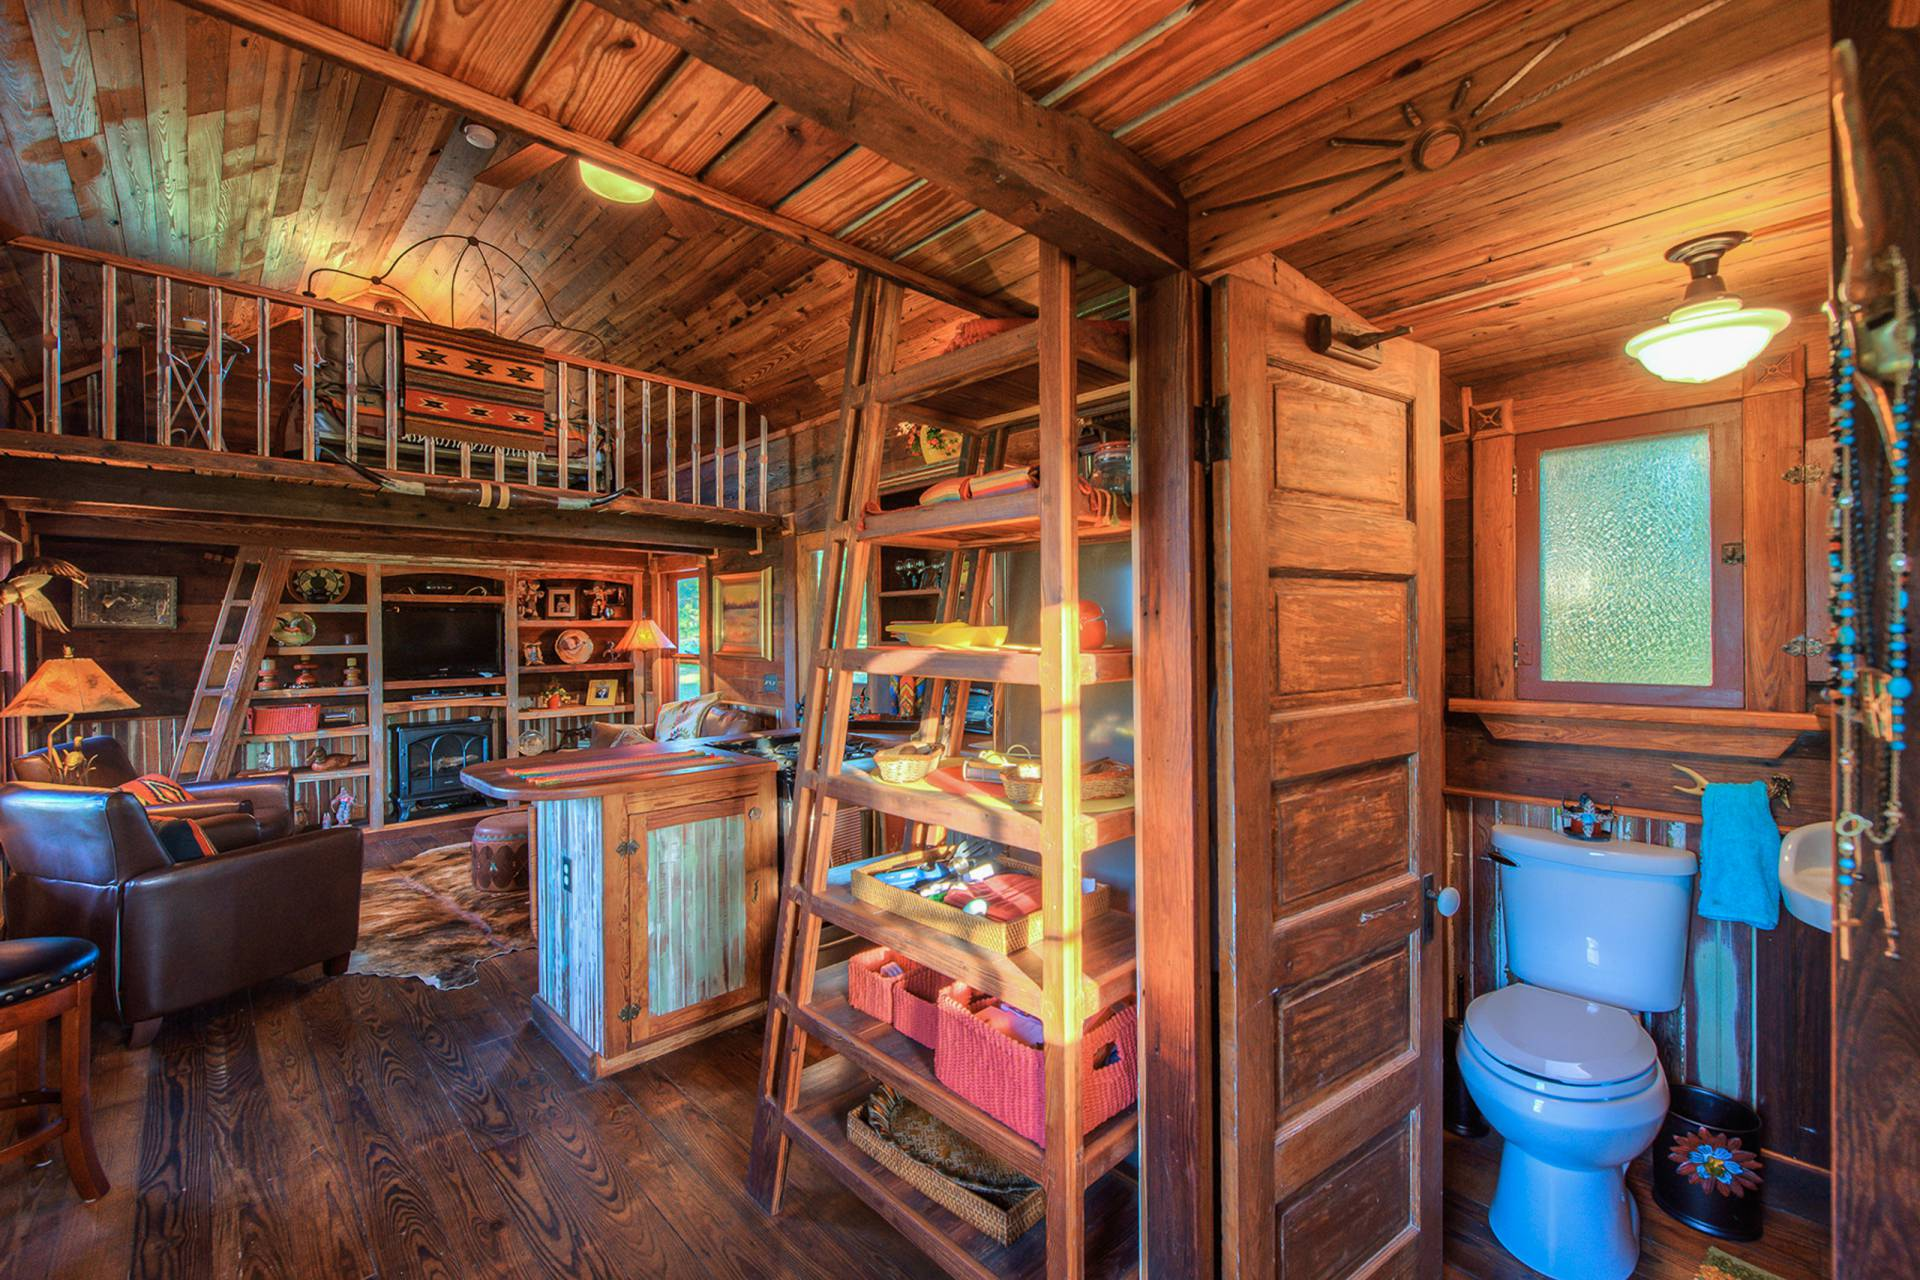 Merveilleux The Rustic Cowboy Cabin Was Built From Salvaged Materials. The 12u0027x28u0027 Cabin